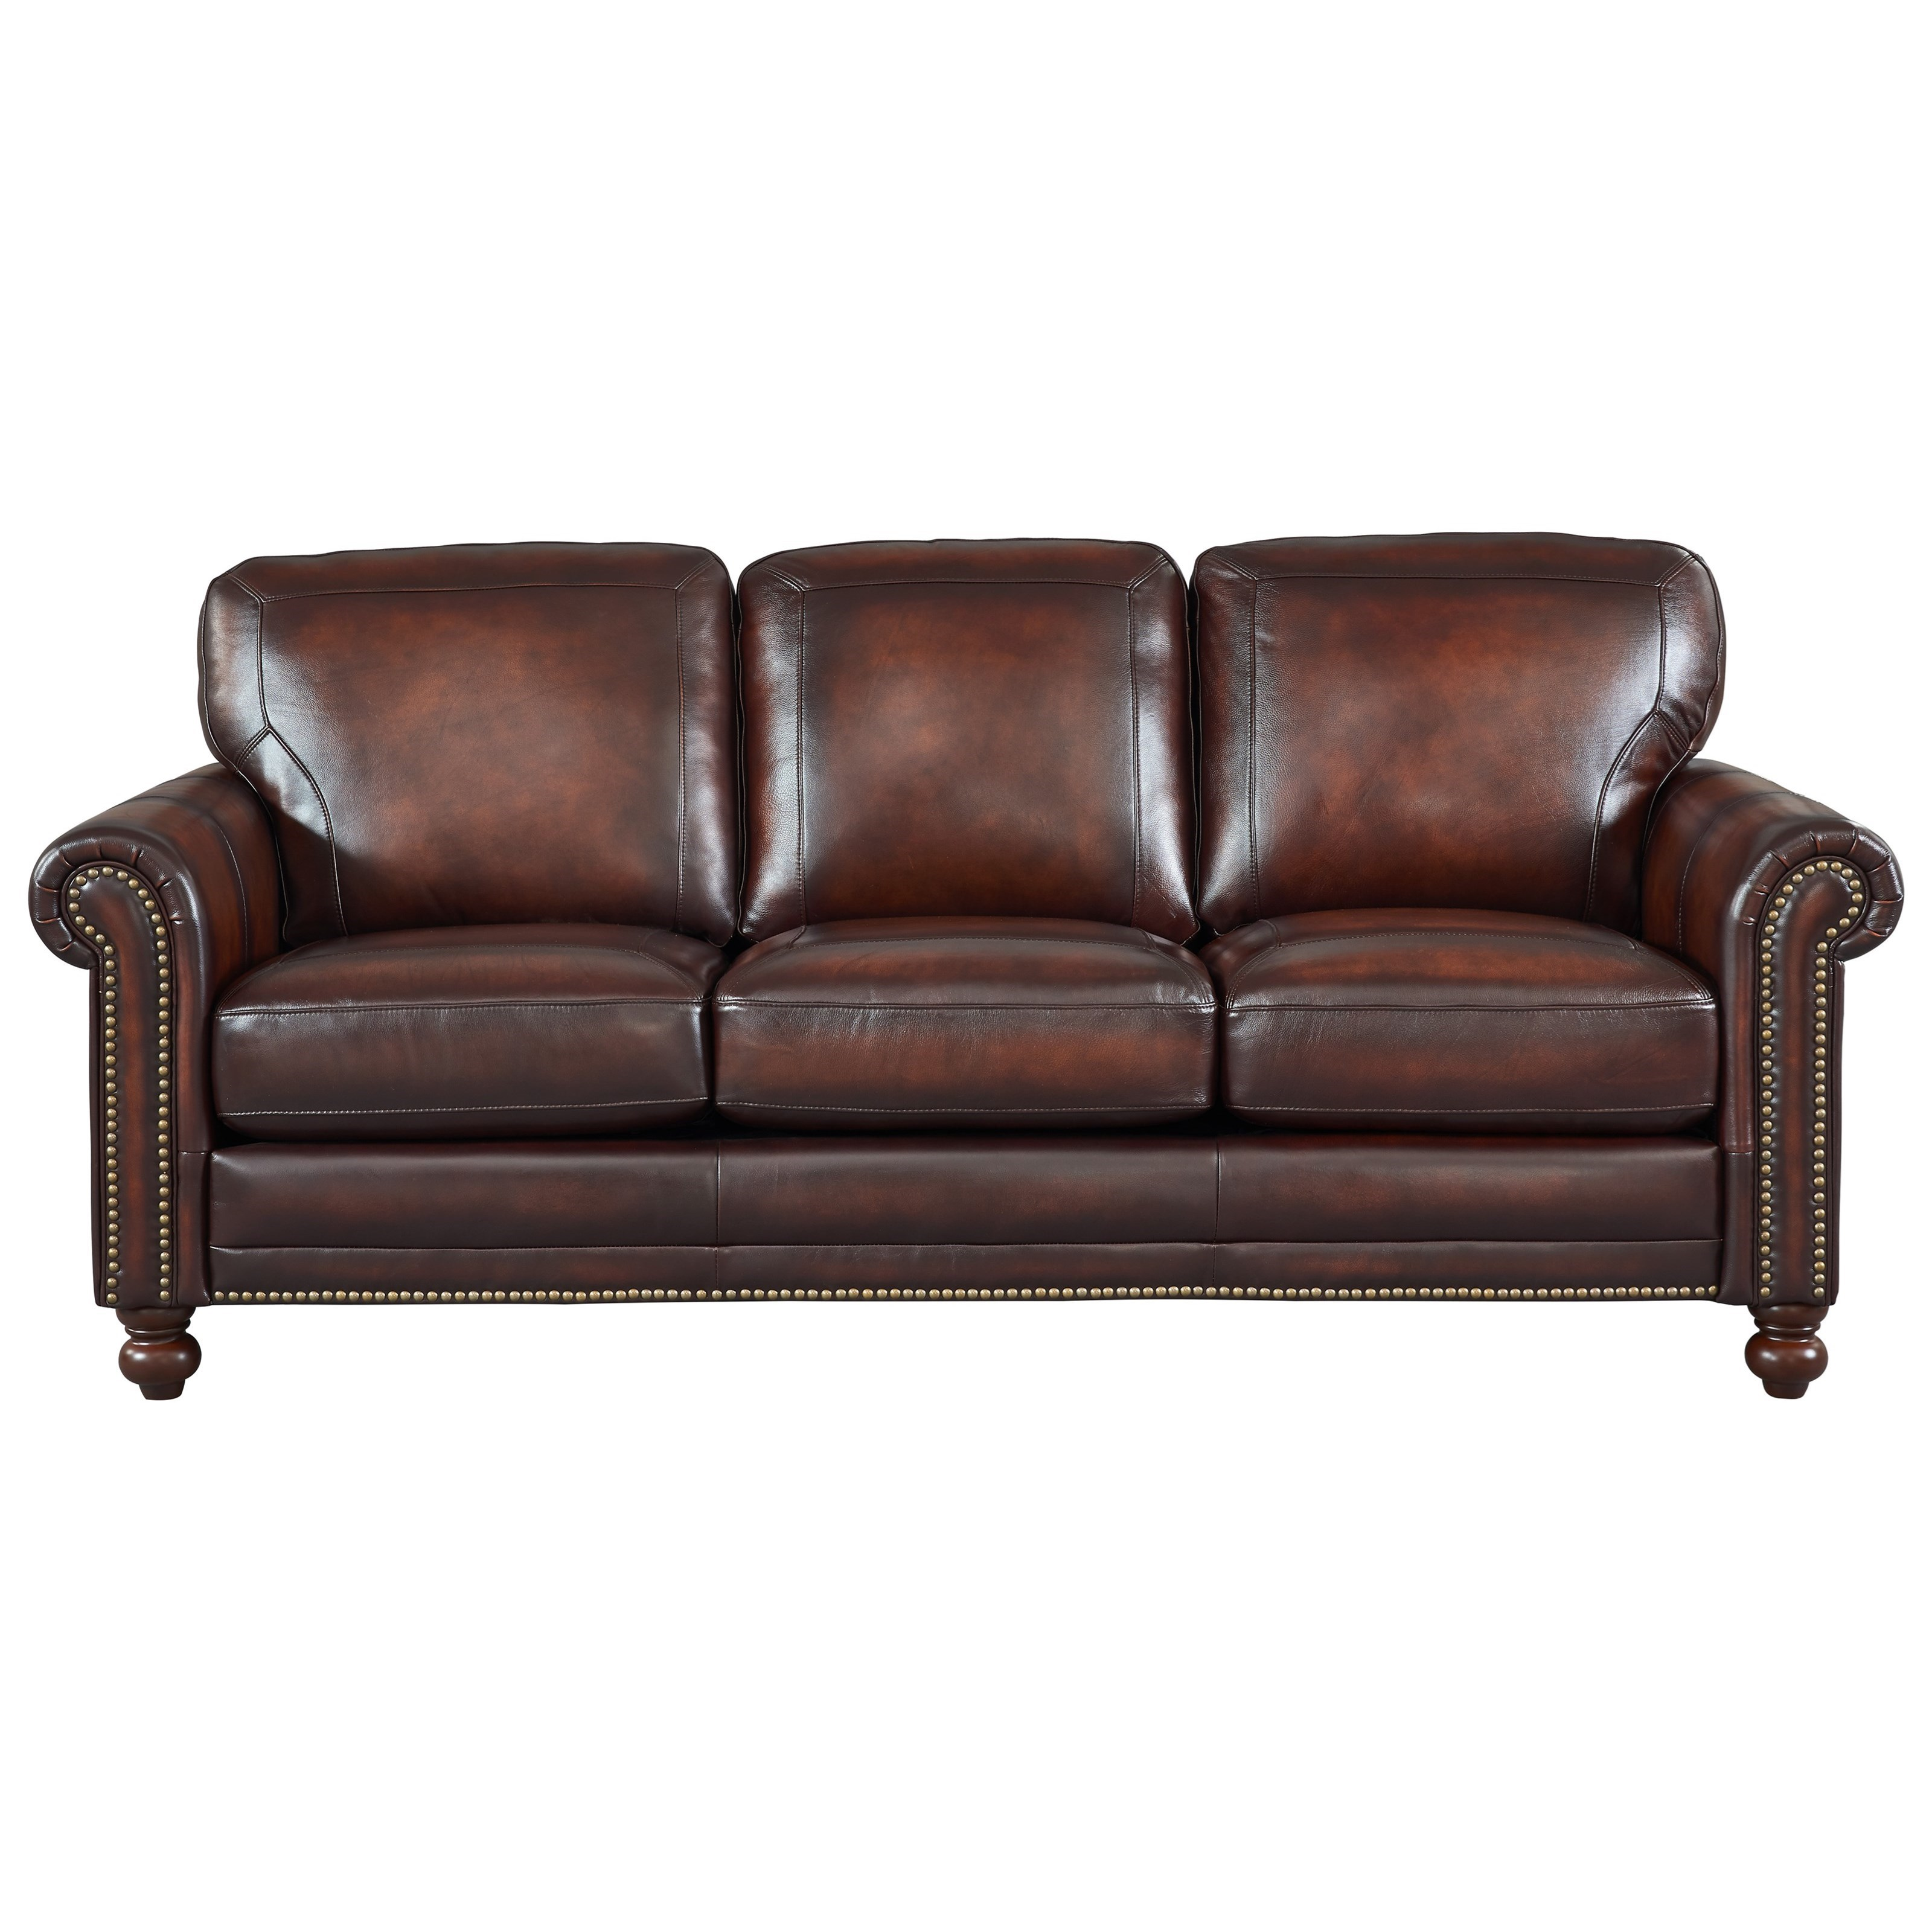 Westin Leather Sofa w/ Roll Arms & Nailhead Trim | Rotmans | Sofas